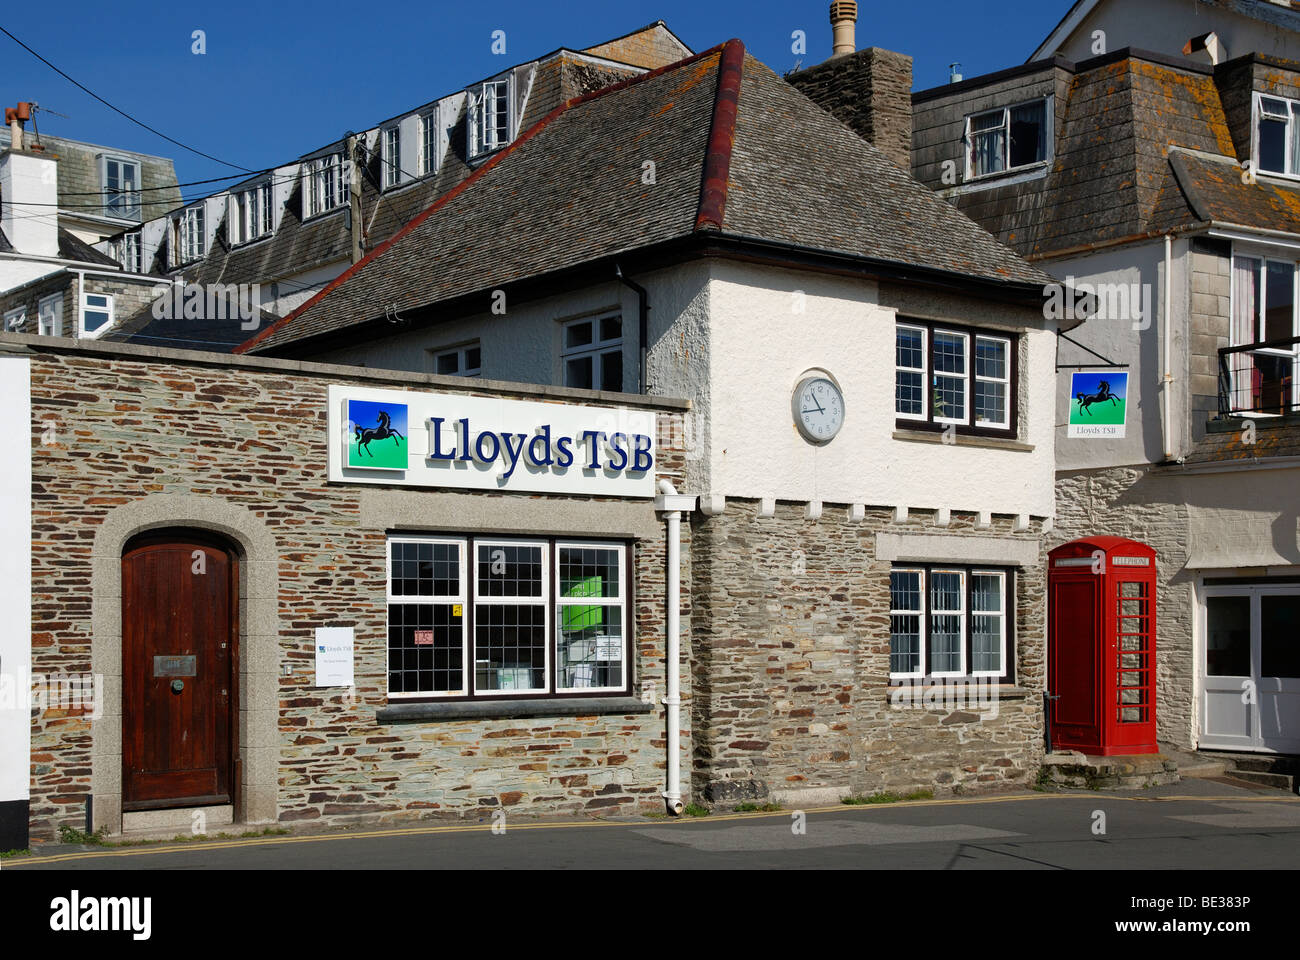 the small Lloyds TSB bank at st,mawes in cornwall, uk - Stock Image